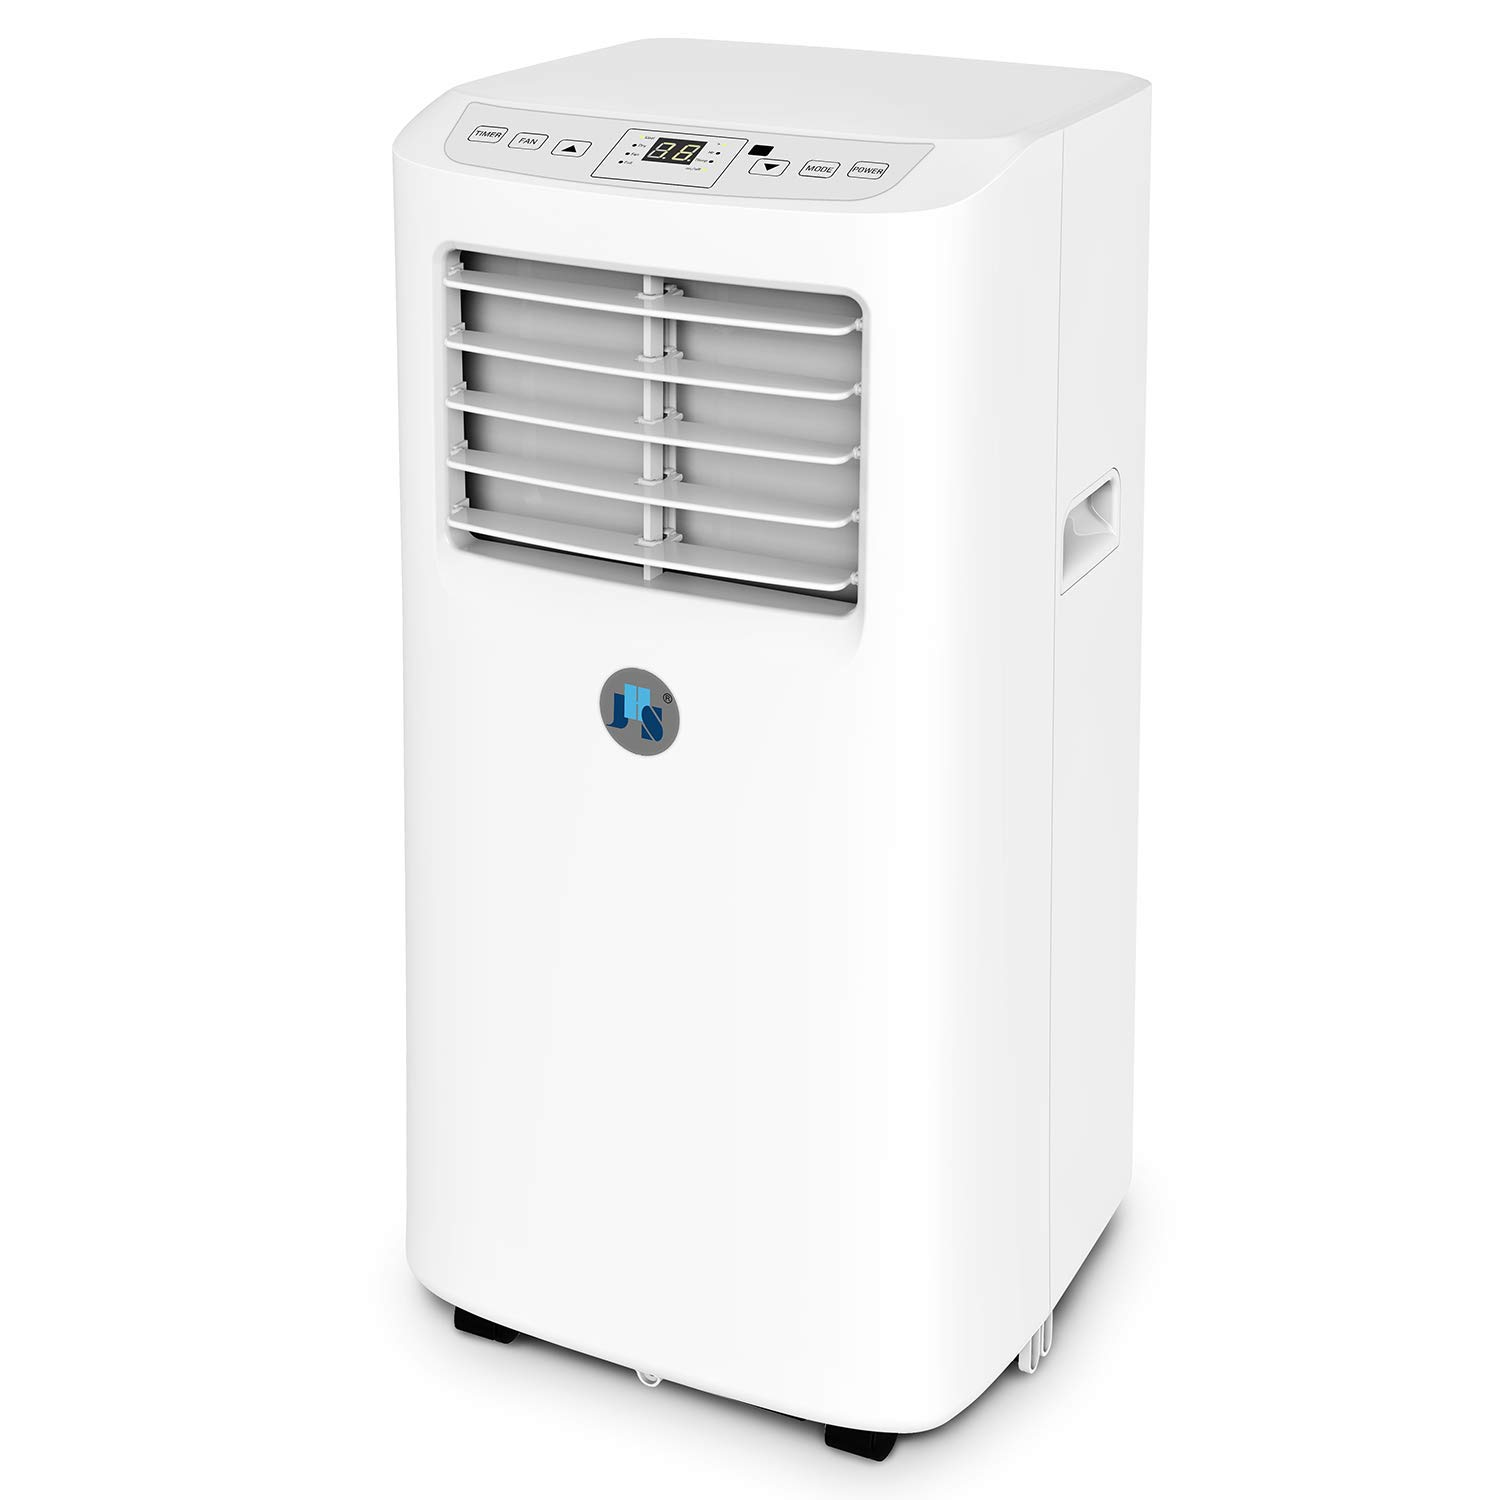 JHS 8,000 BTU Small Portable Air Conditioner, 3-in-1 Floor AC Unit with 2 Fan Speeds, Remote Control and Digital LED Display, Cover up to 200 Sq. Ft. by JHS